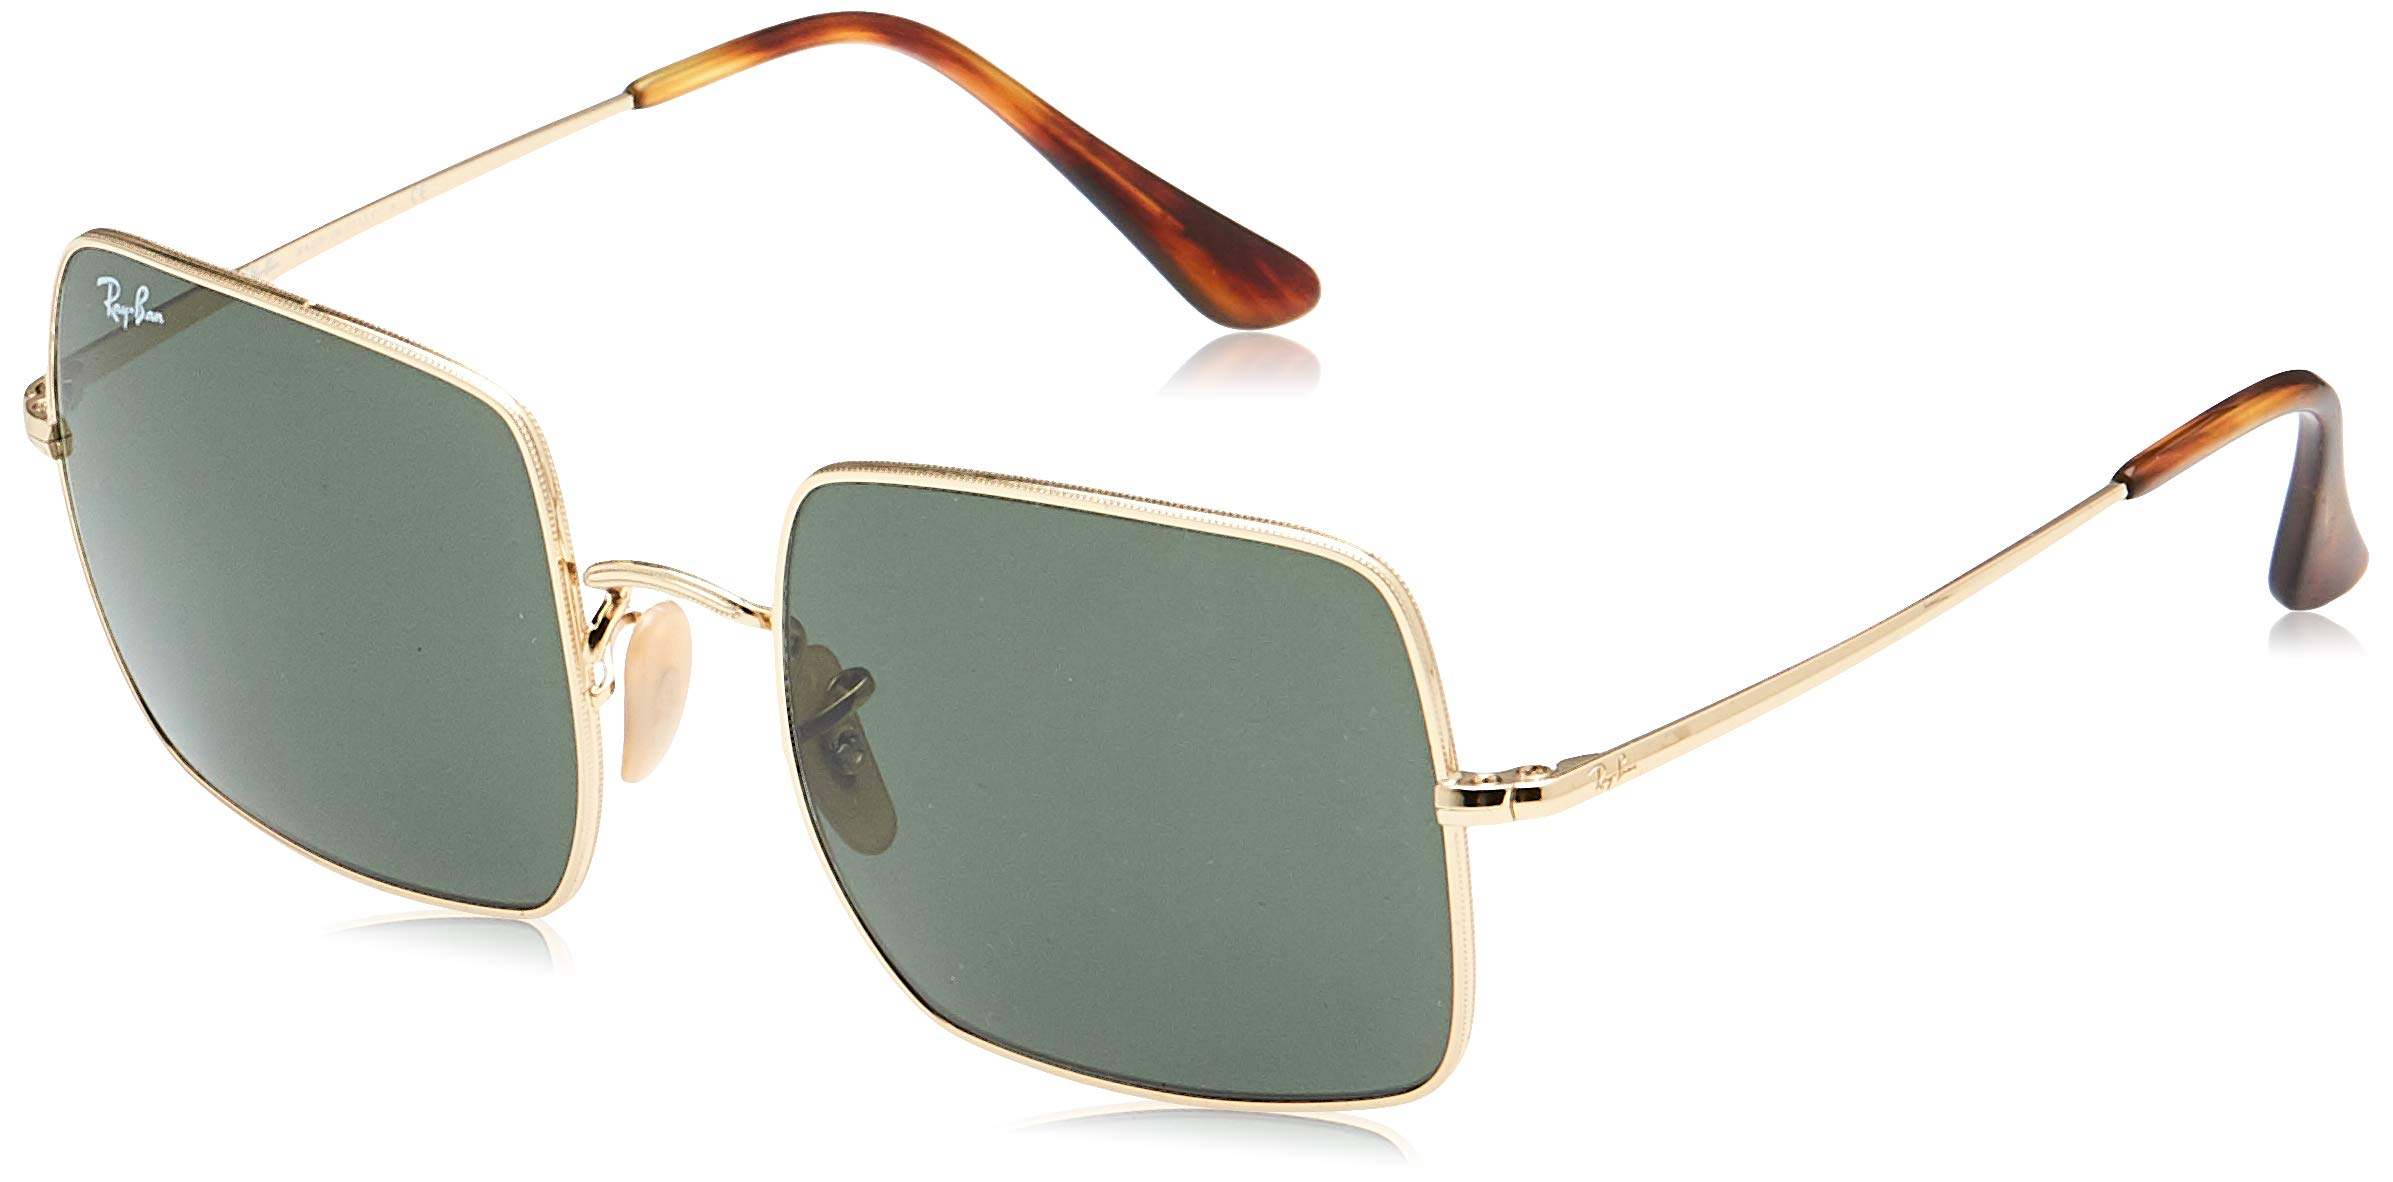 RAY-BAN RB1971 Square Classic Metal Sunglasses, Gold/Green, 54 mm by RAY-BAN